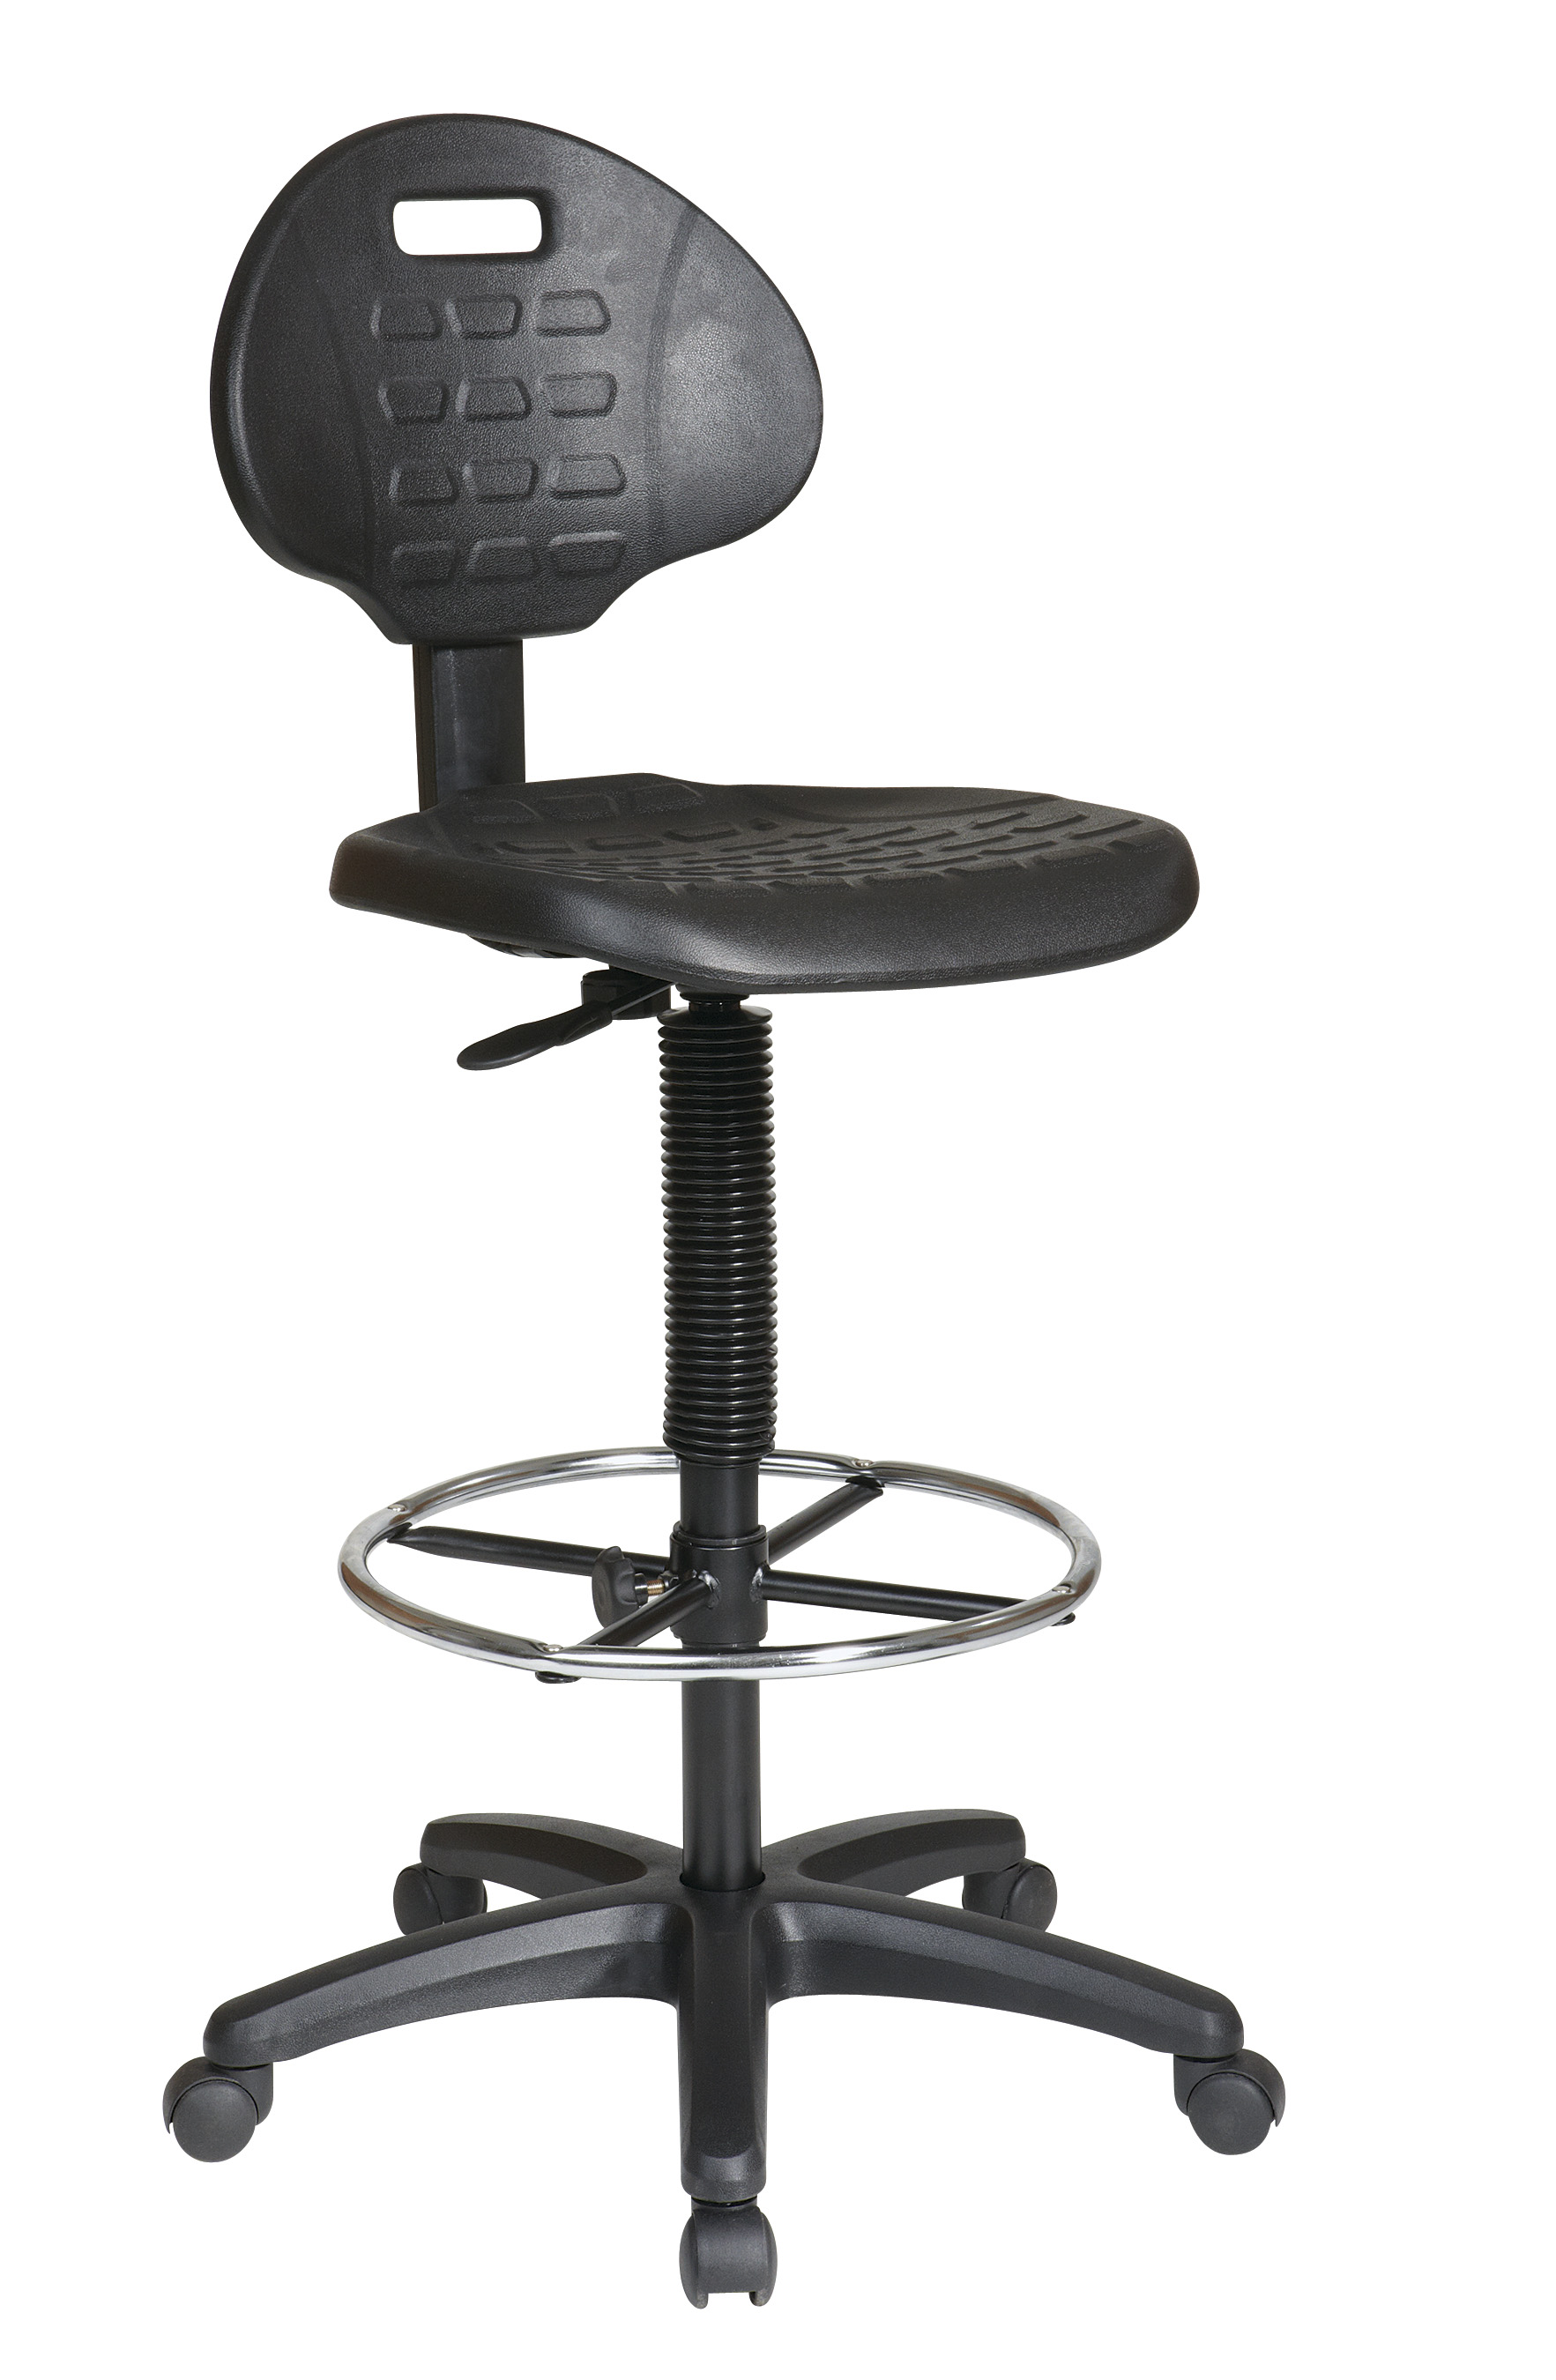 Adjustable Drafting Chair Office Star Kh550 Drafting Chair With Adjustable Footrest